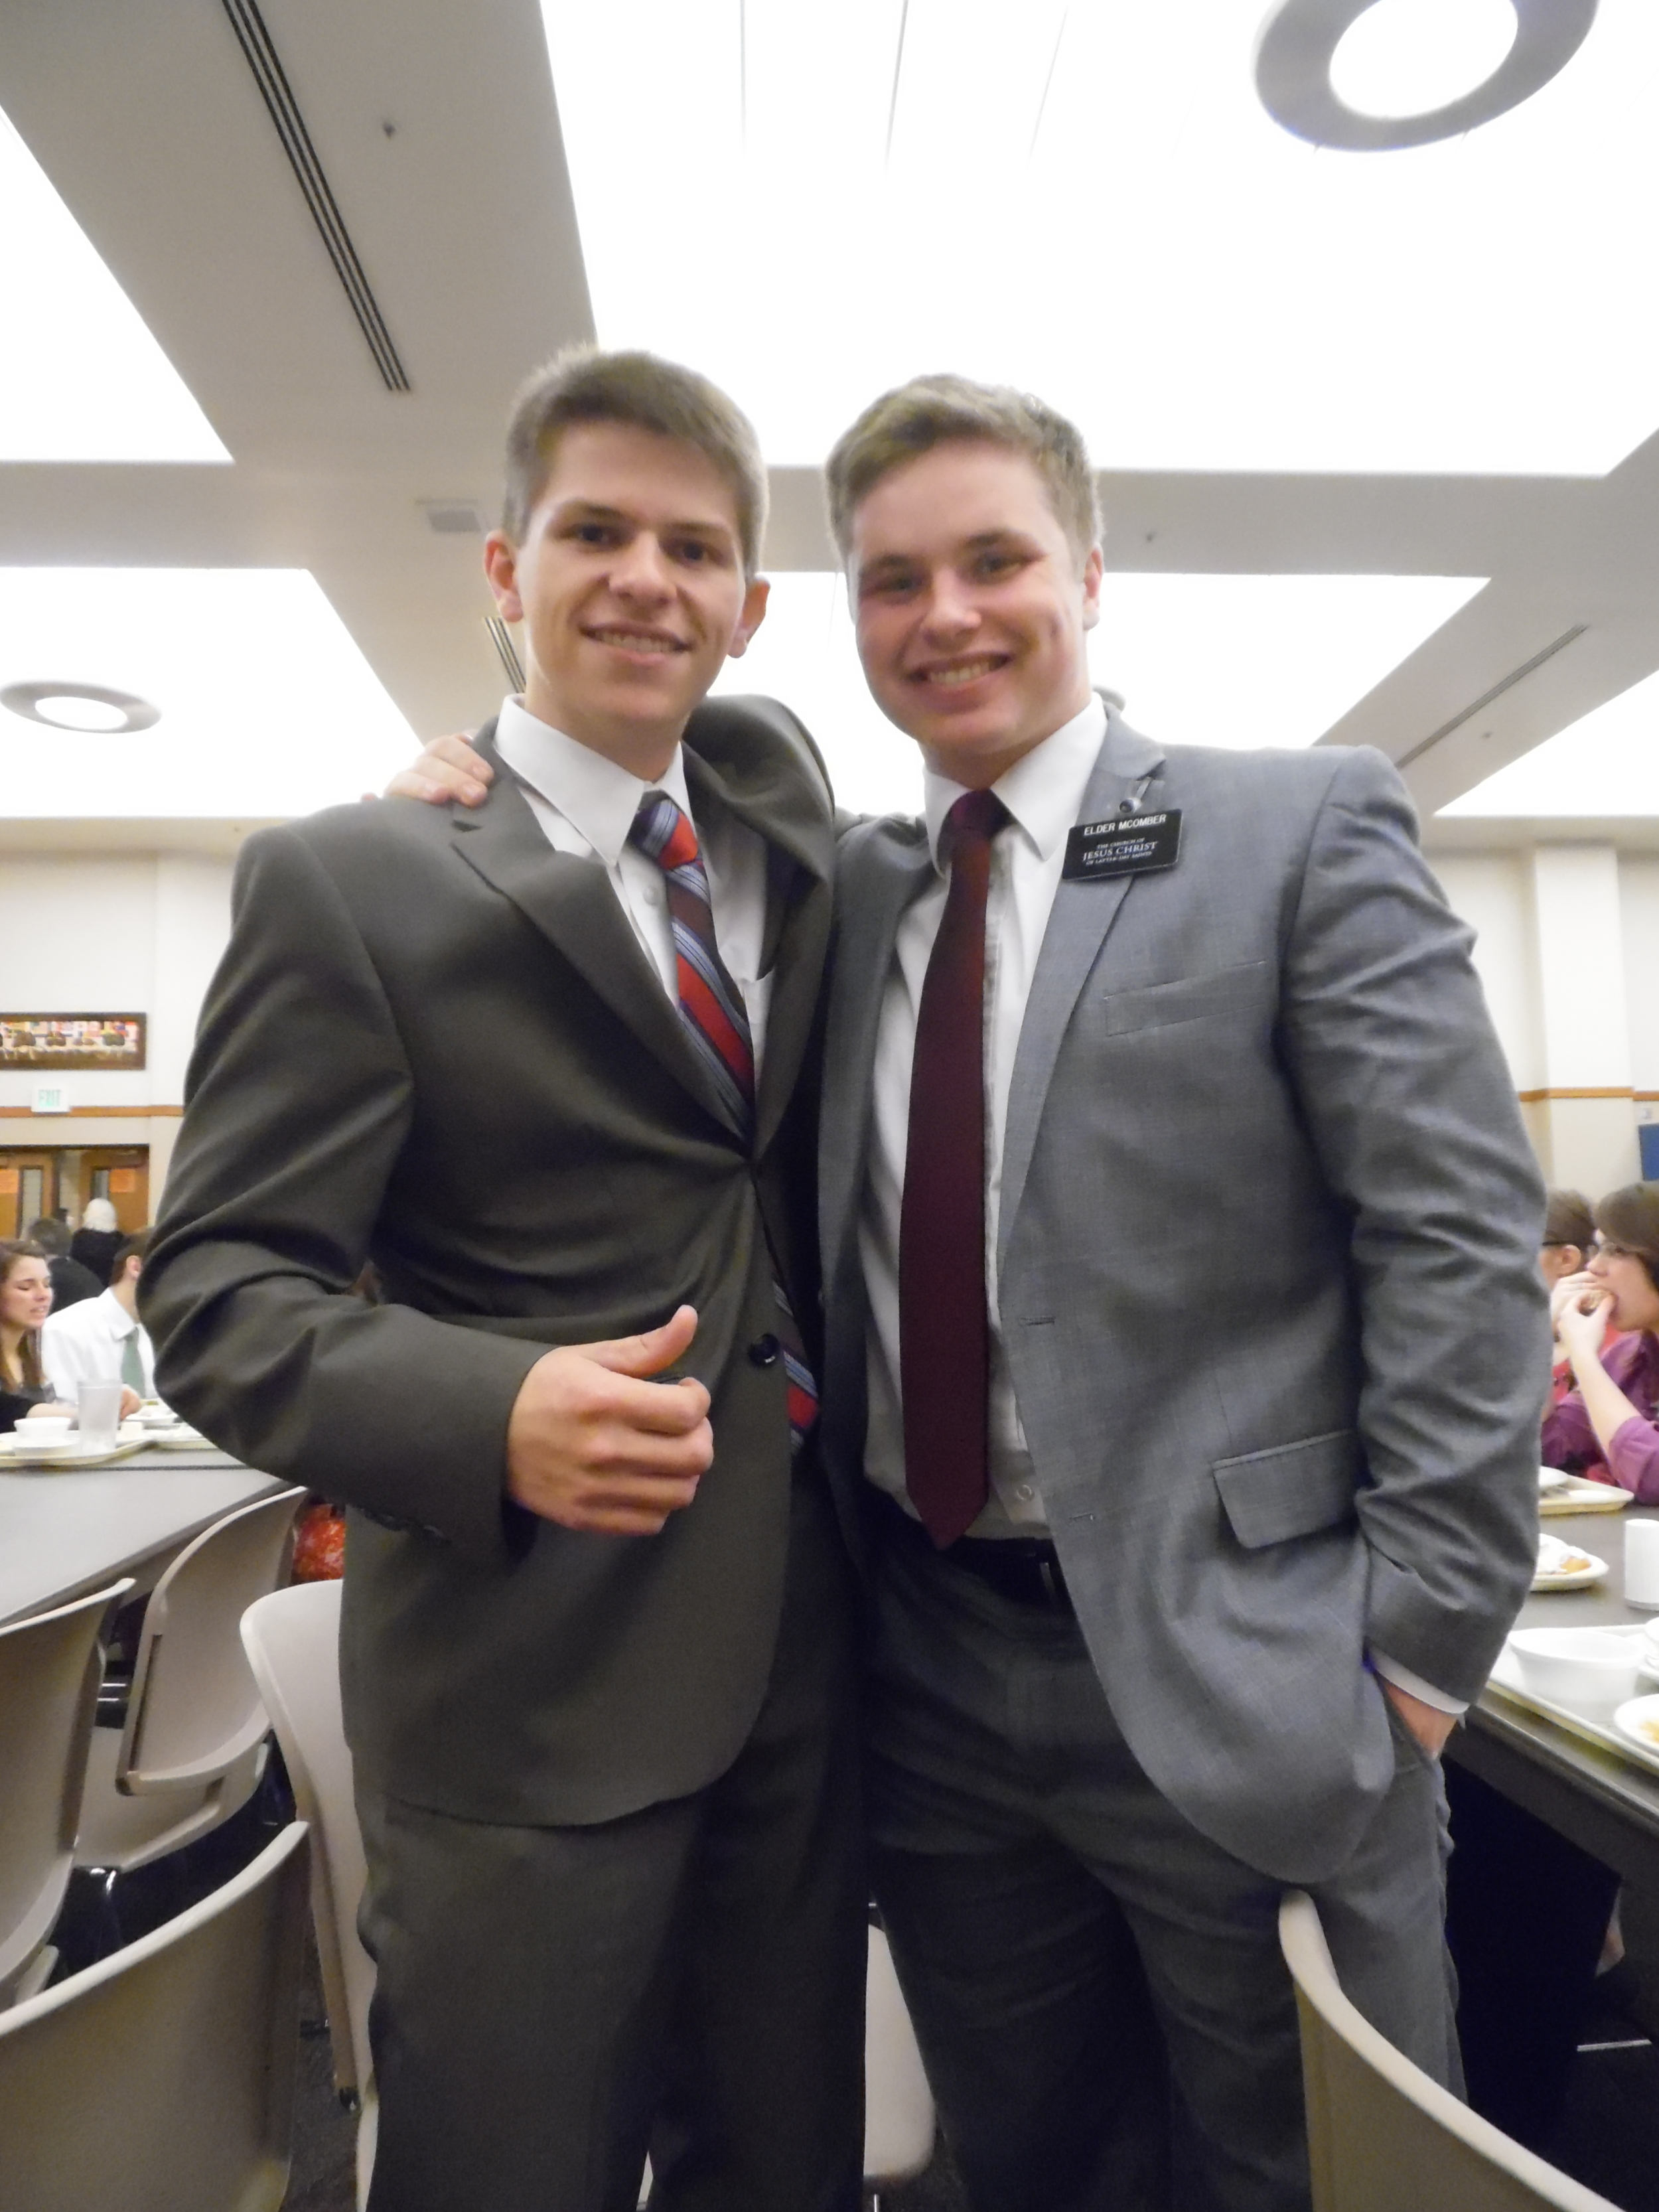 """Elder Matthew Blanding and Elder McComber These two are from the same stake and were Stripling Warriors in the play """"Built on the Rock"""". Elder McComber is going to New Jersey."""